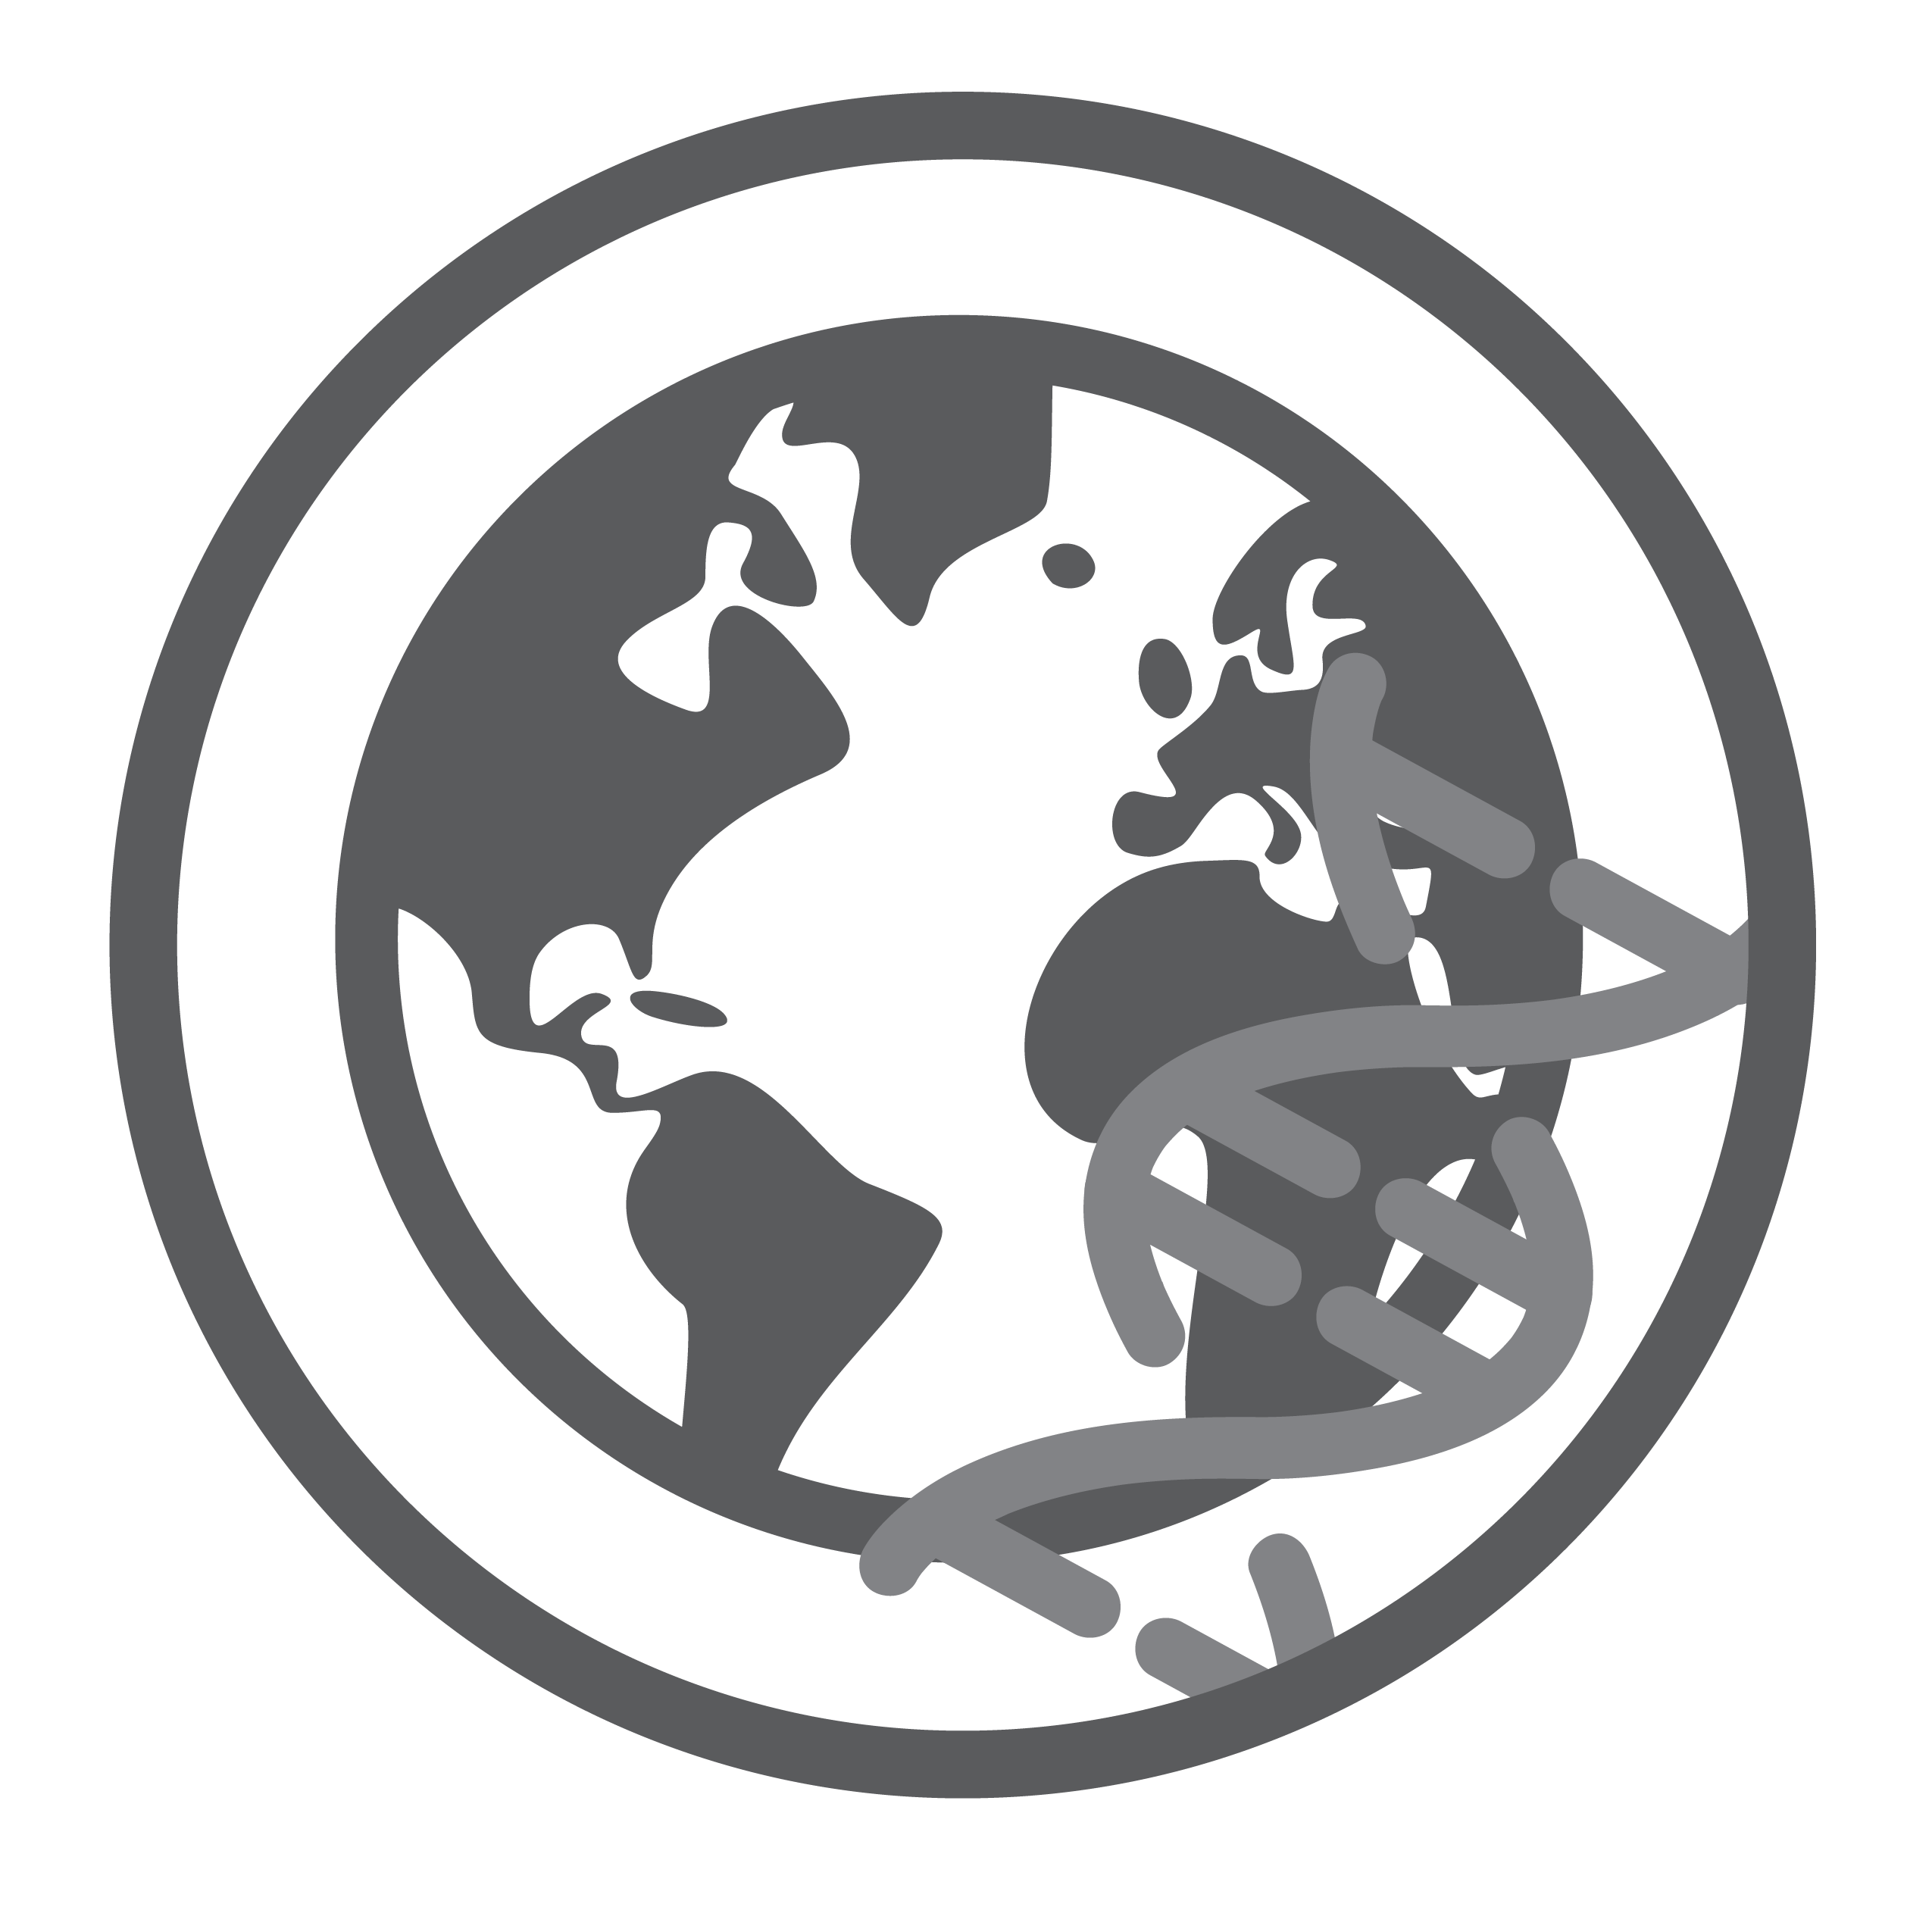 sectoricons_5. International-Global Health.png